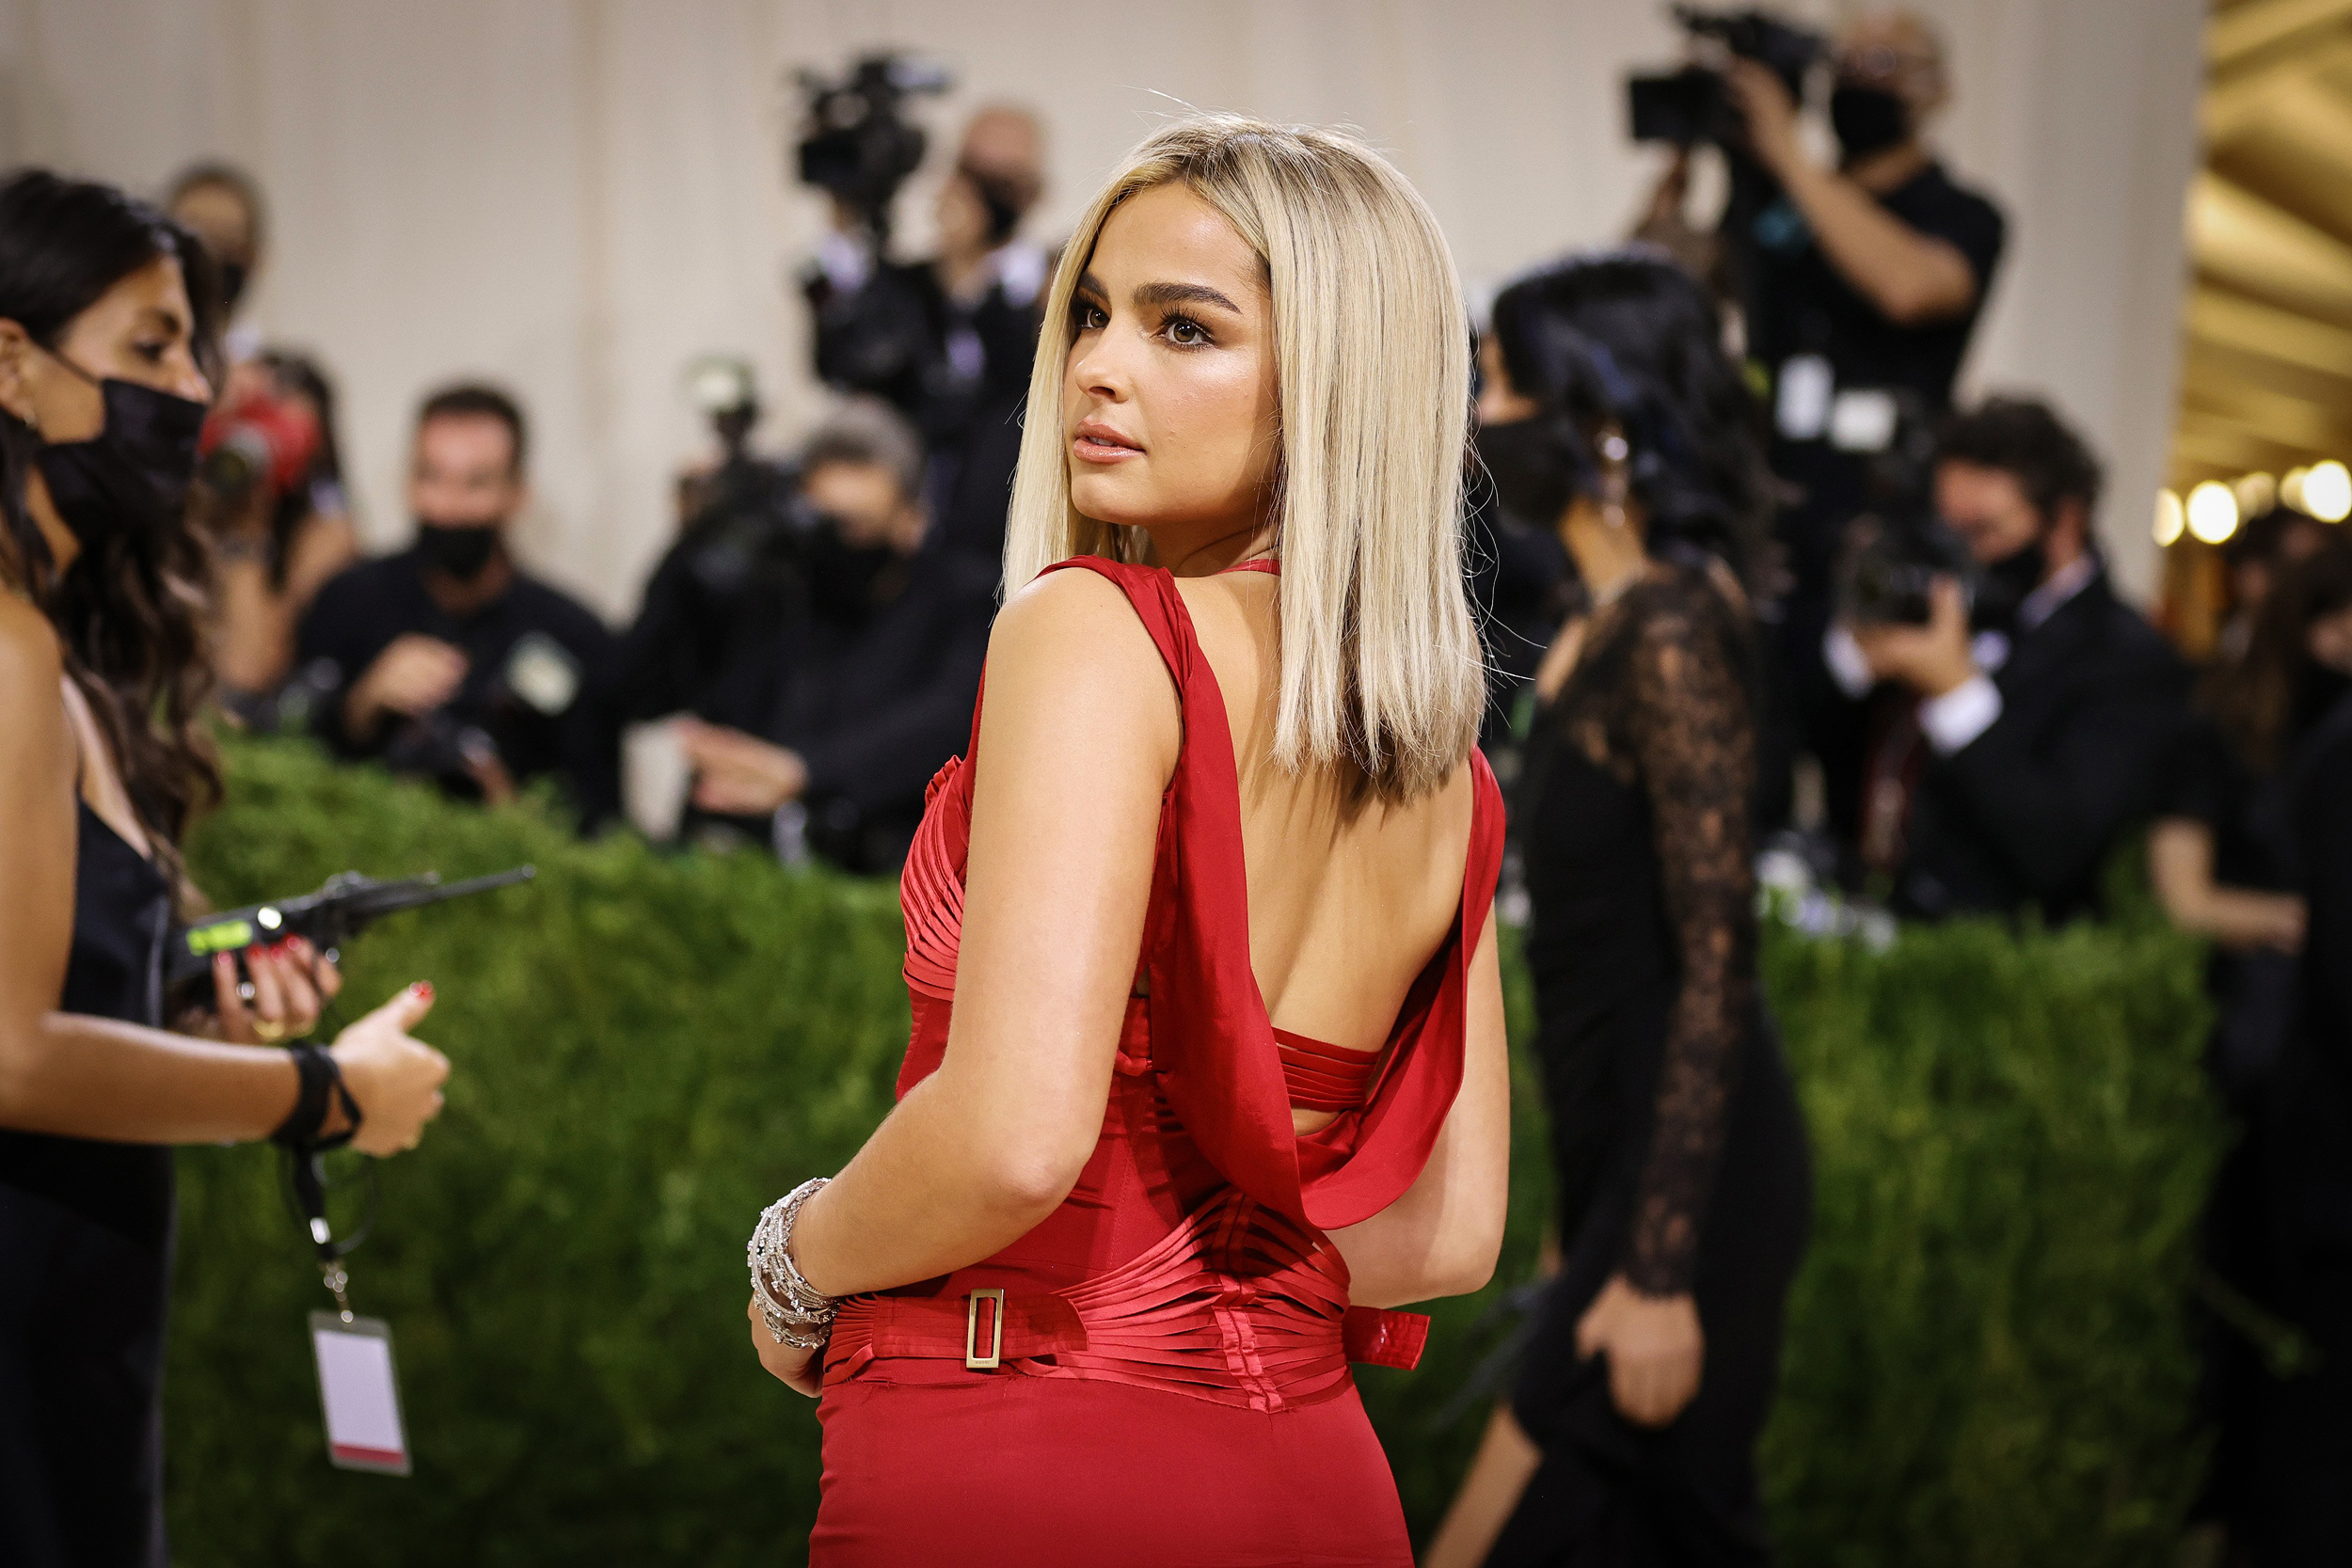 This year's Met Gala shows how the celebrity pecking order has changed